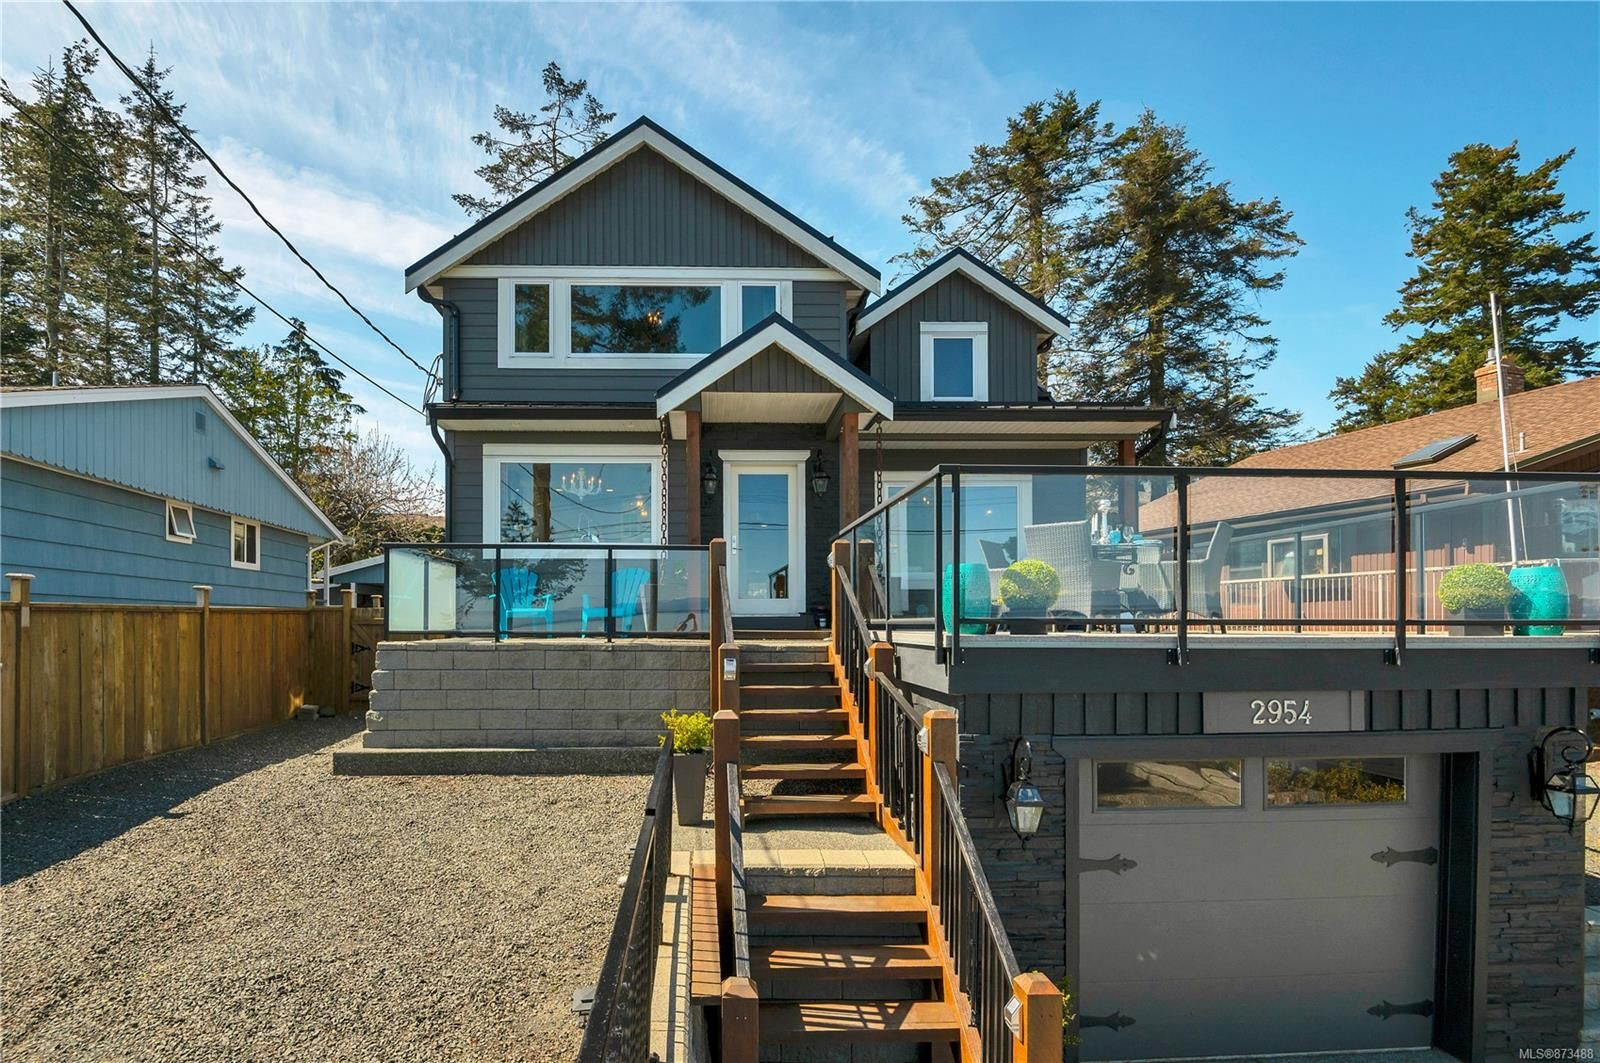 Main Photo: 2954 S Island Hwy in : CR Willow Point House for sale (Campbell River)  : MLS®# 873488